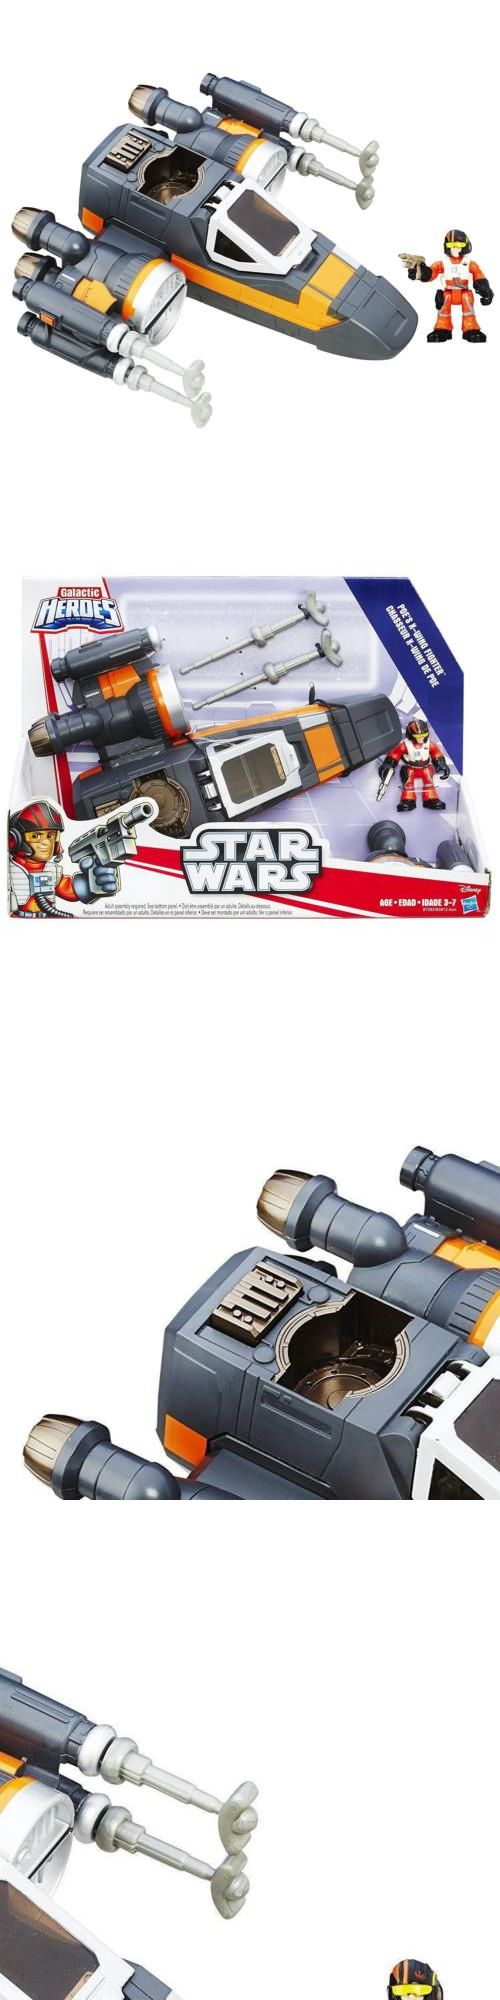 Playskool 2576: Playskool Star Wars Galactic Heroes Poe'S X-Wing Fighter Figures Hasbro Chop -> BUY IT NOW ONLY: $30.31 on eBay!